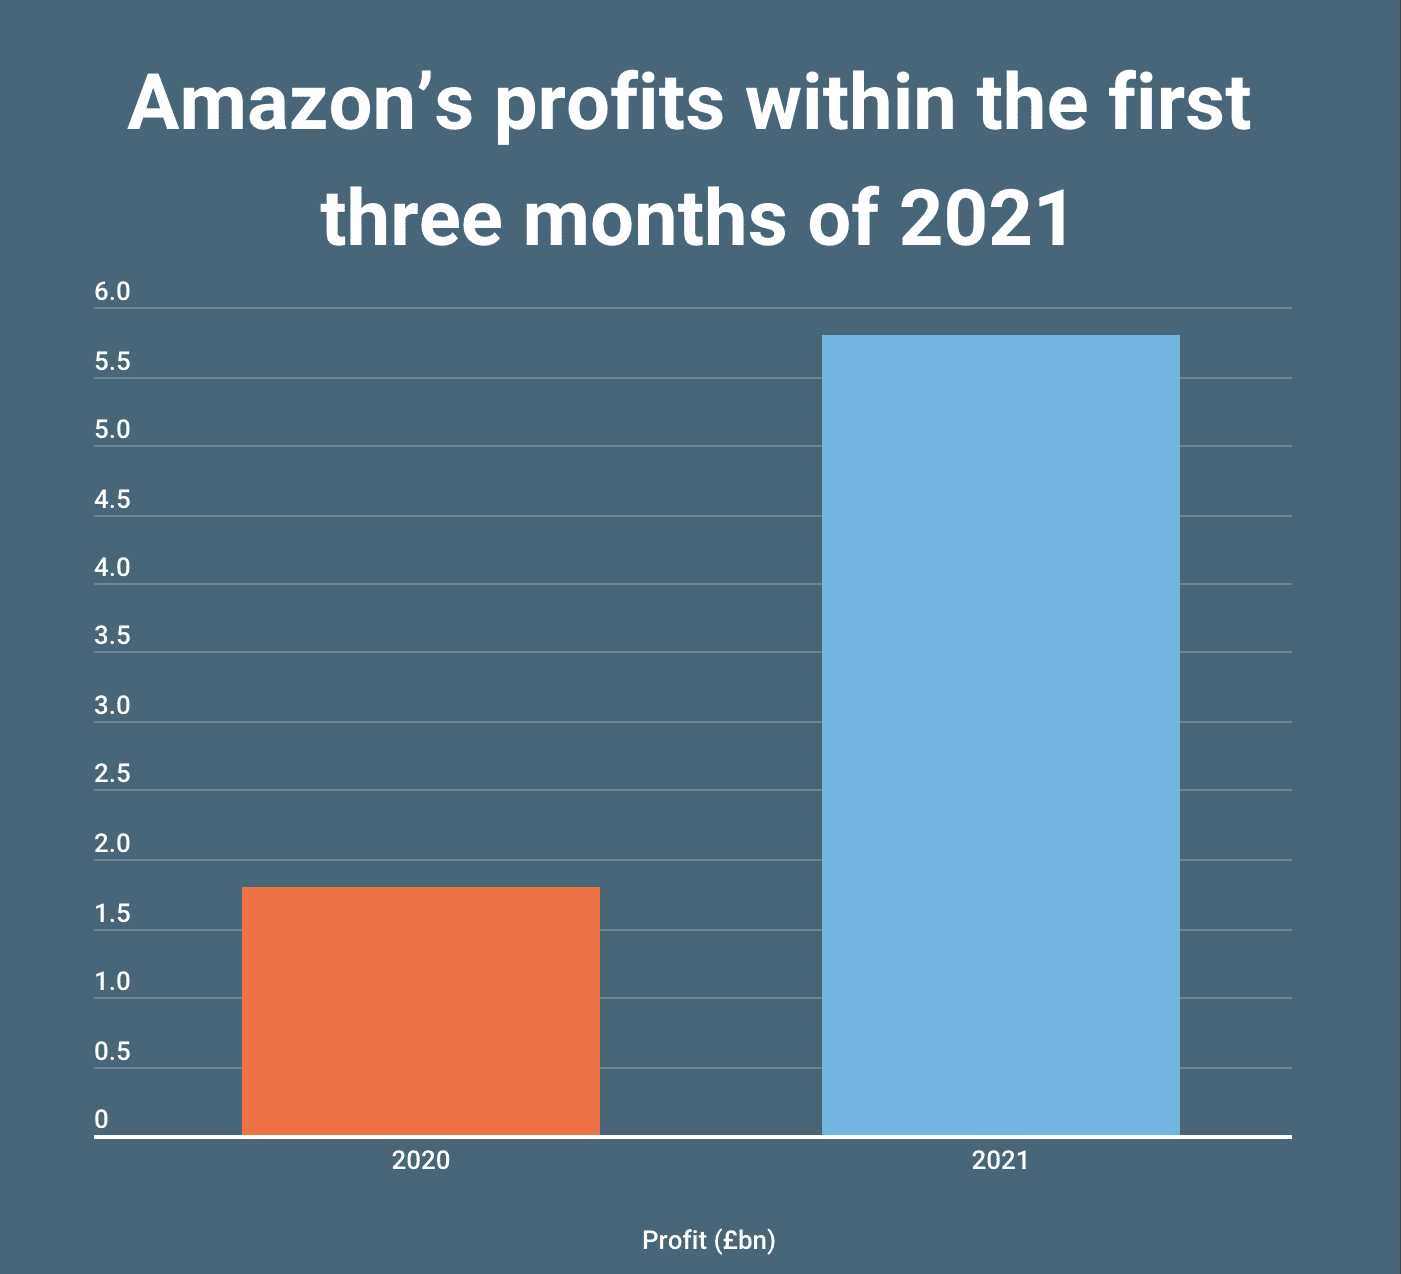 Graph showing Amazon profits wihtin the first 3 months of 2021 compared with 2020